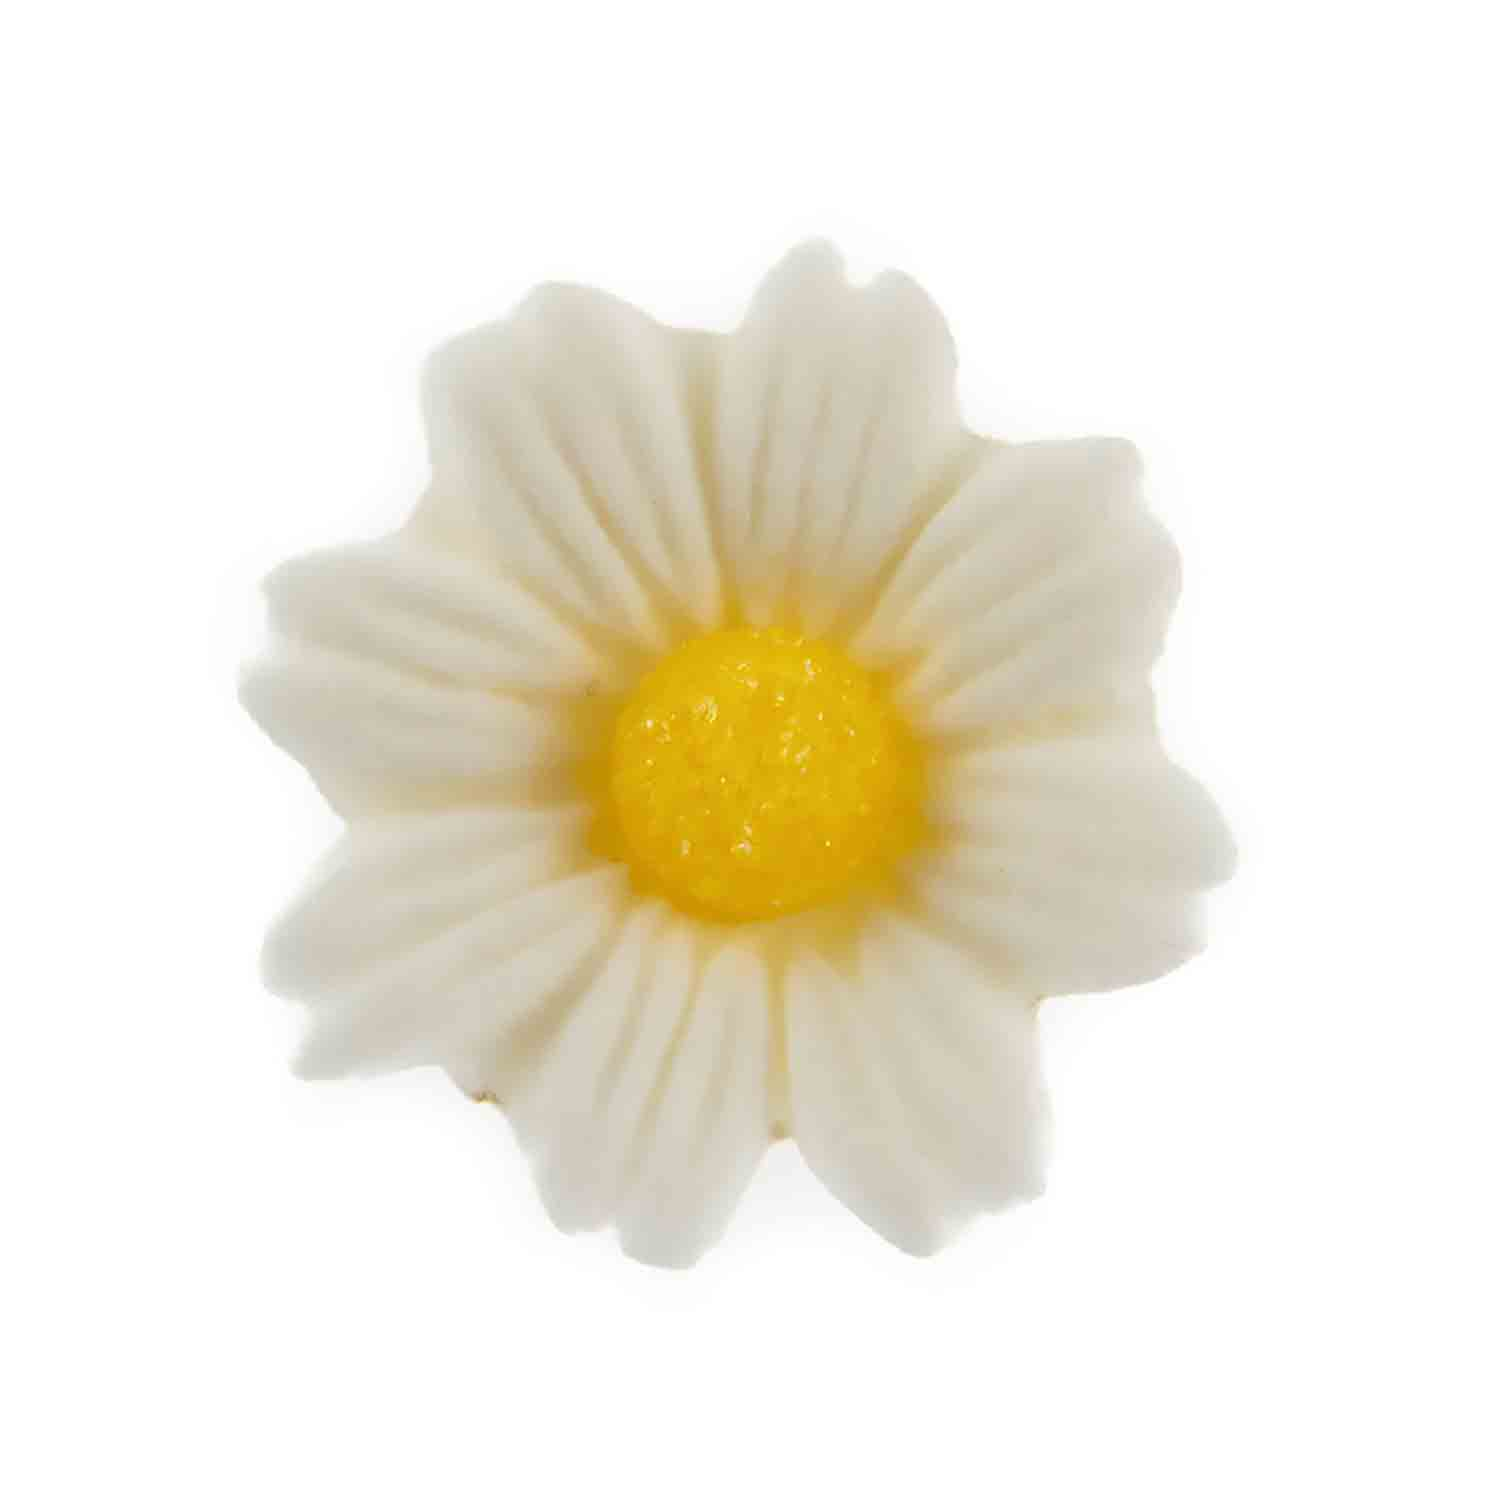 Medium White Gum Paste Daisies